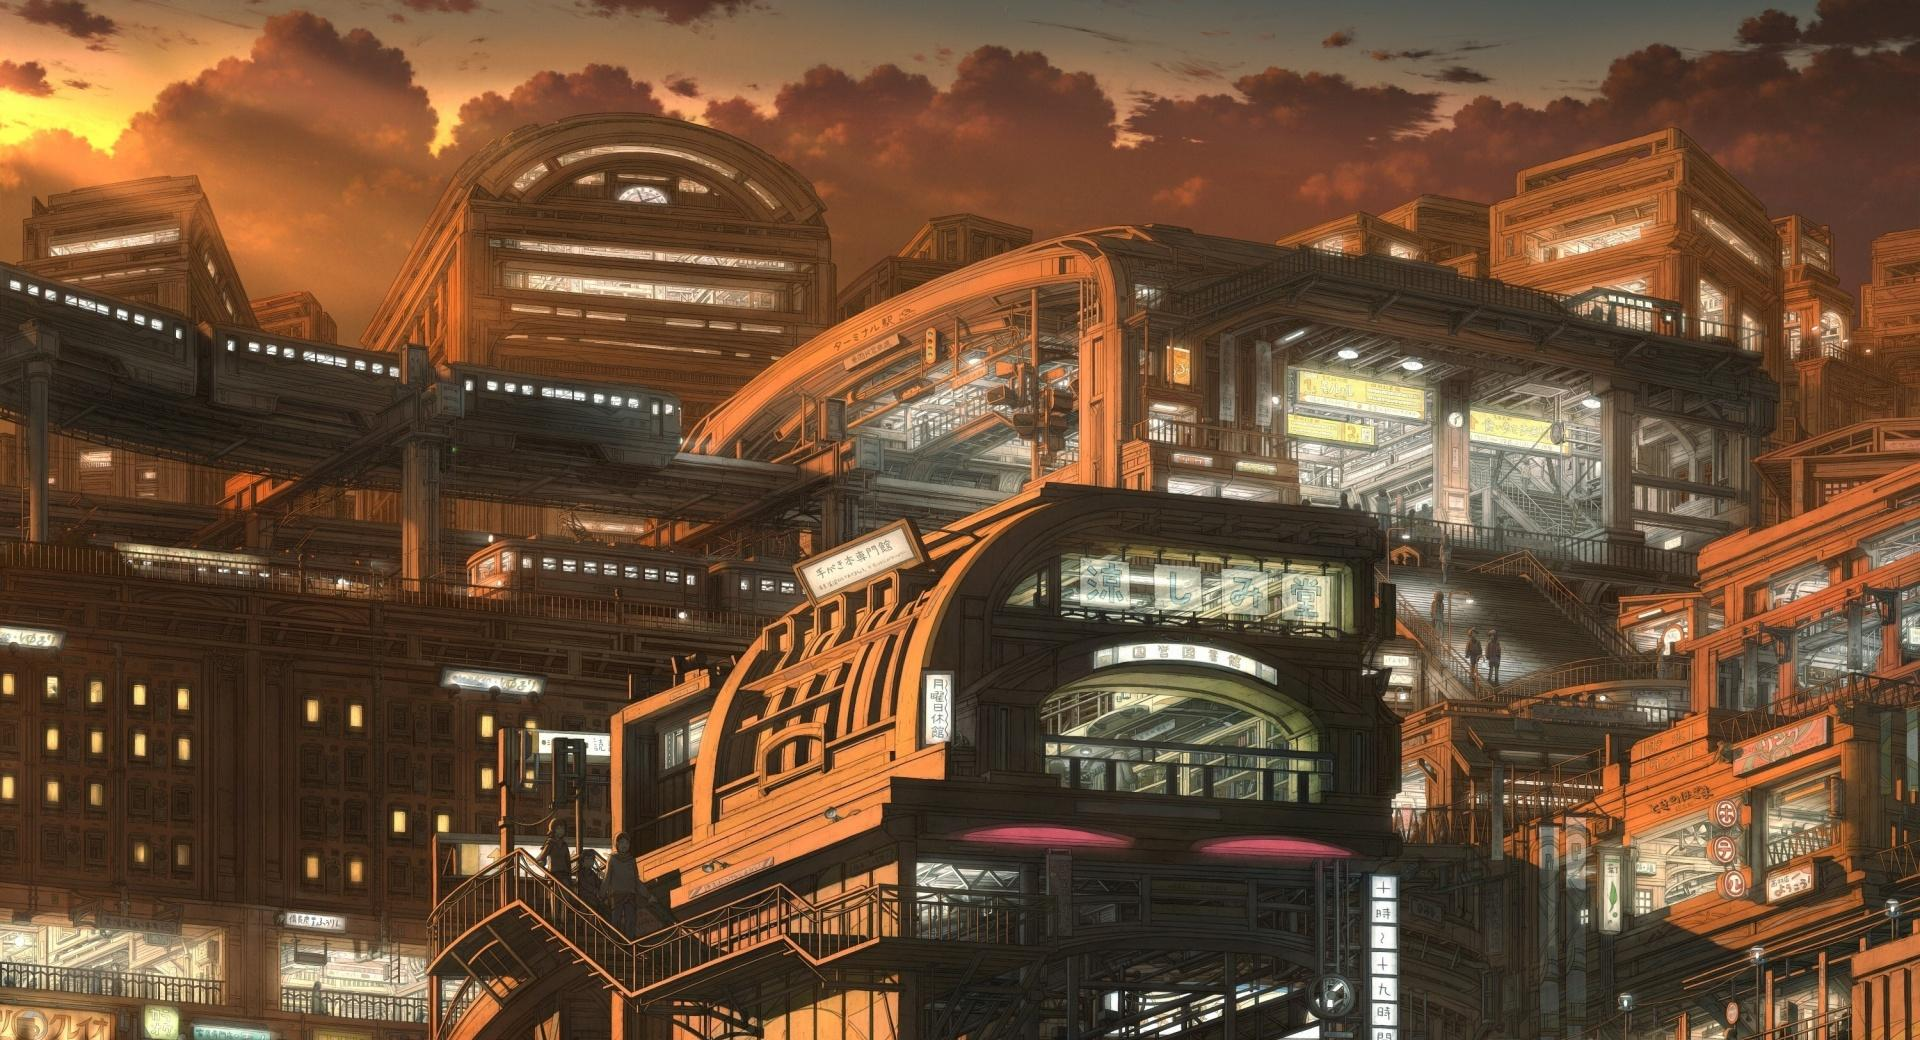 City Of The Future wallpapers HD quality